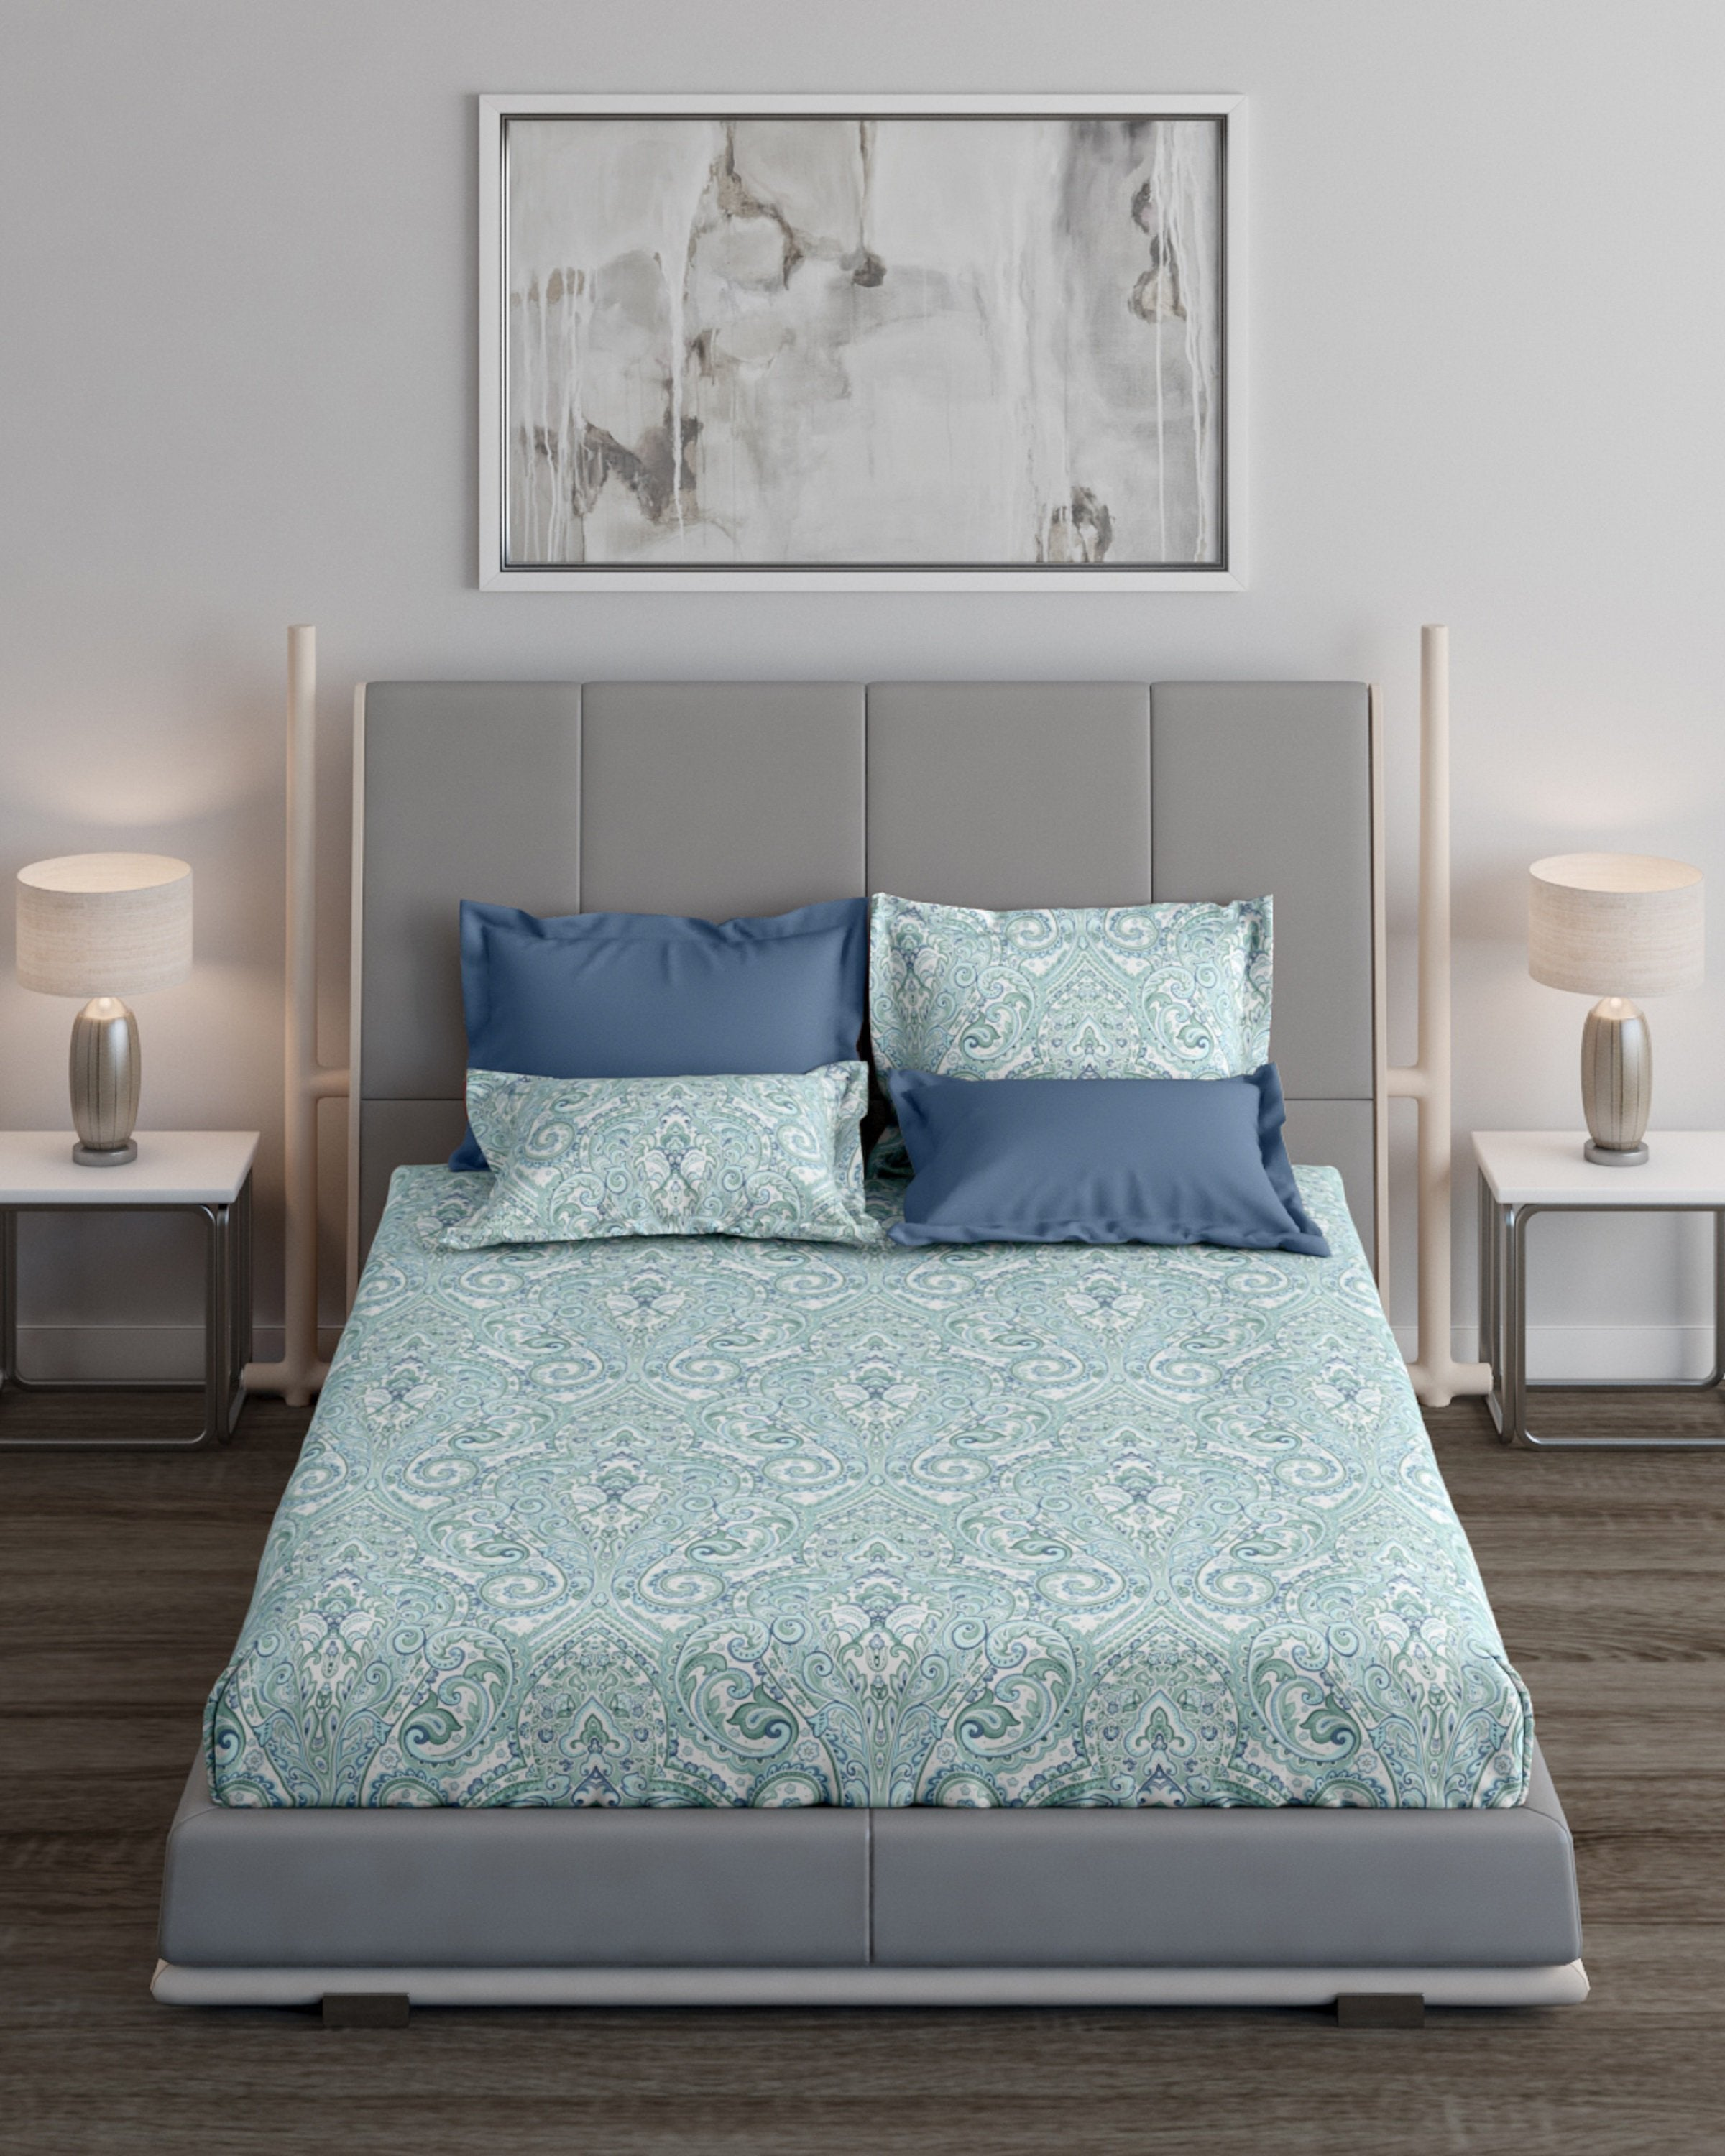 TERESA  BEDDING ANGIE KRIPALANI DESIGN- ANGIE HOMES - ANGIES INDIA